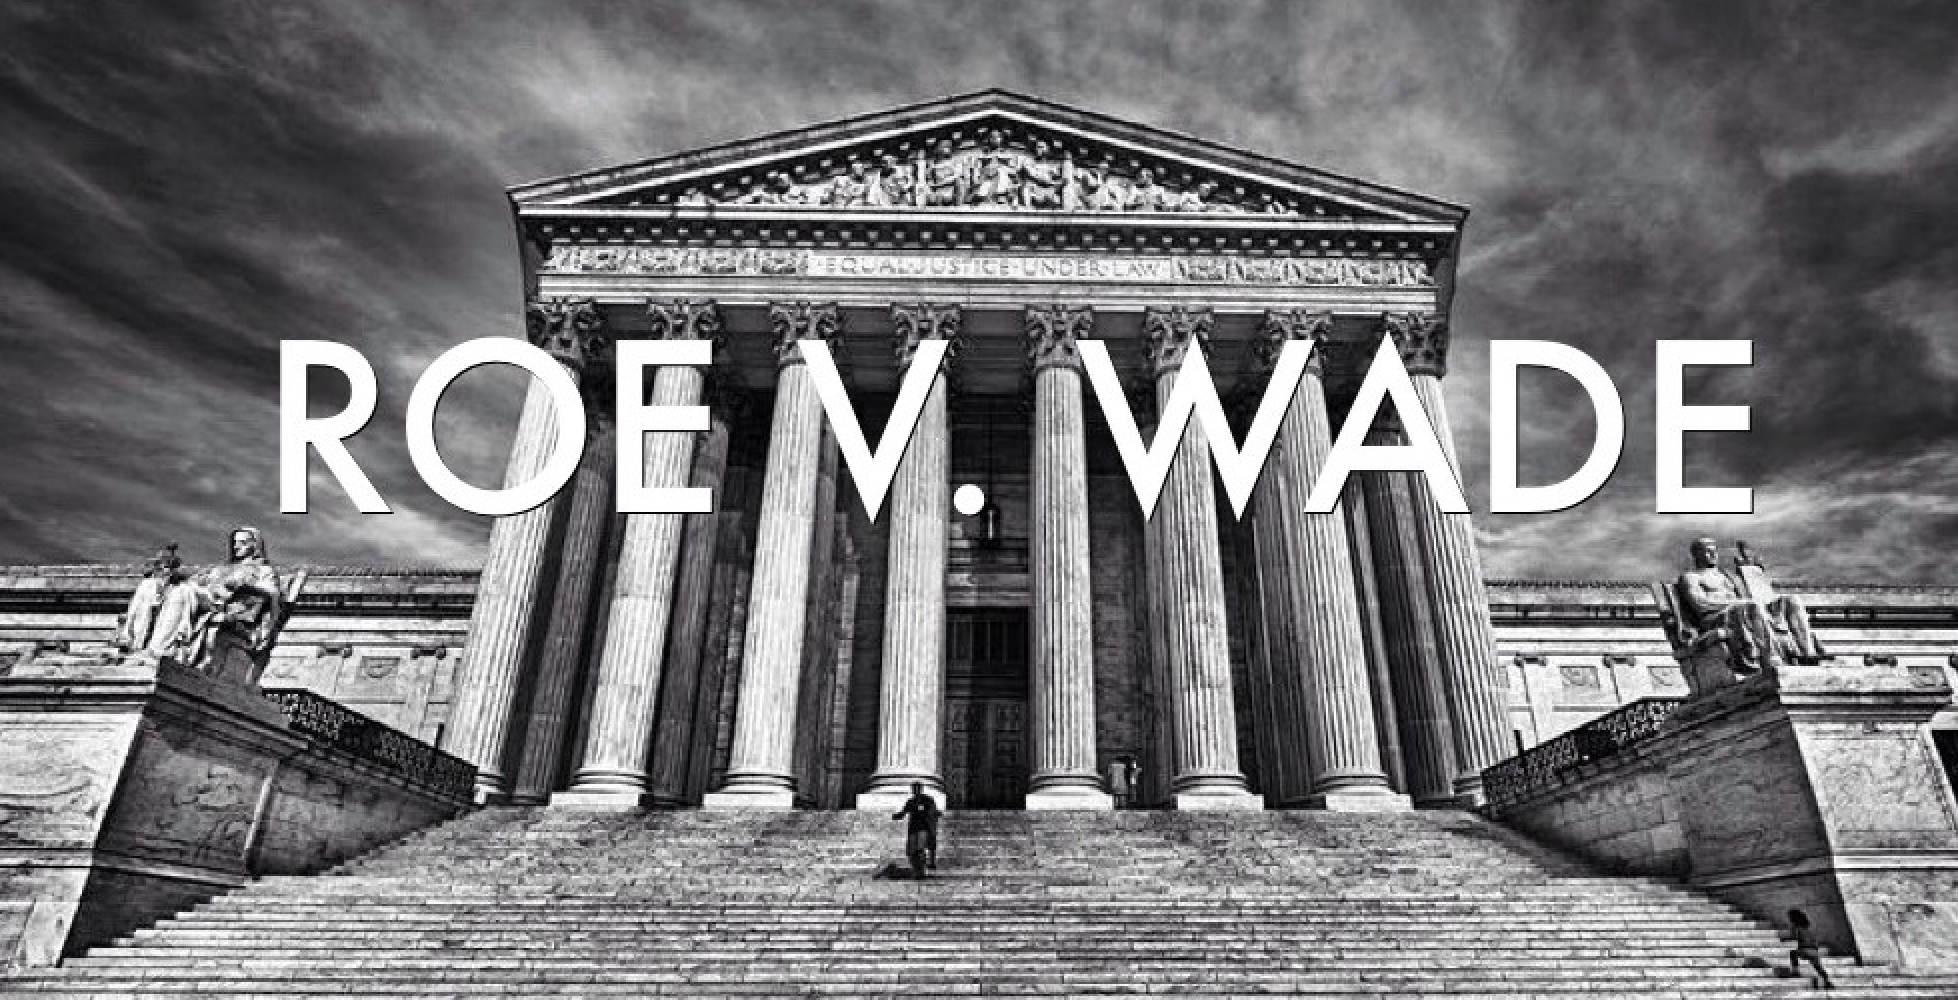 Before and after Roe v. Wade